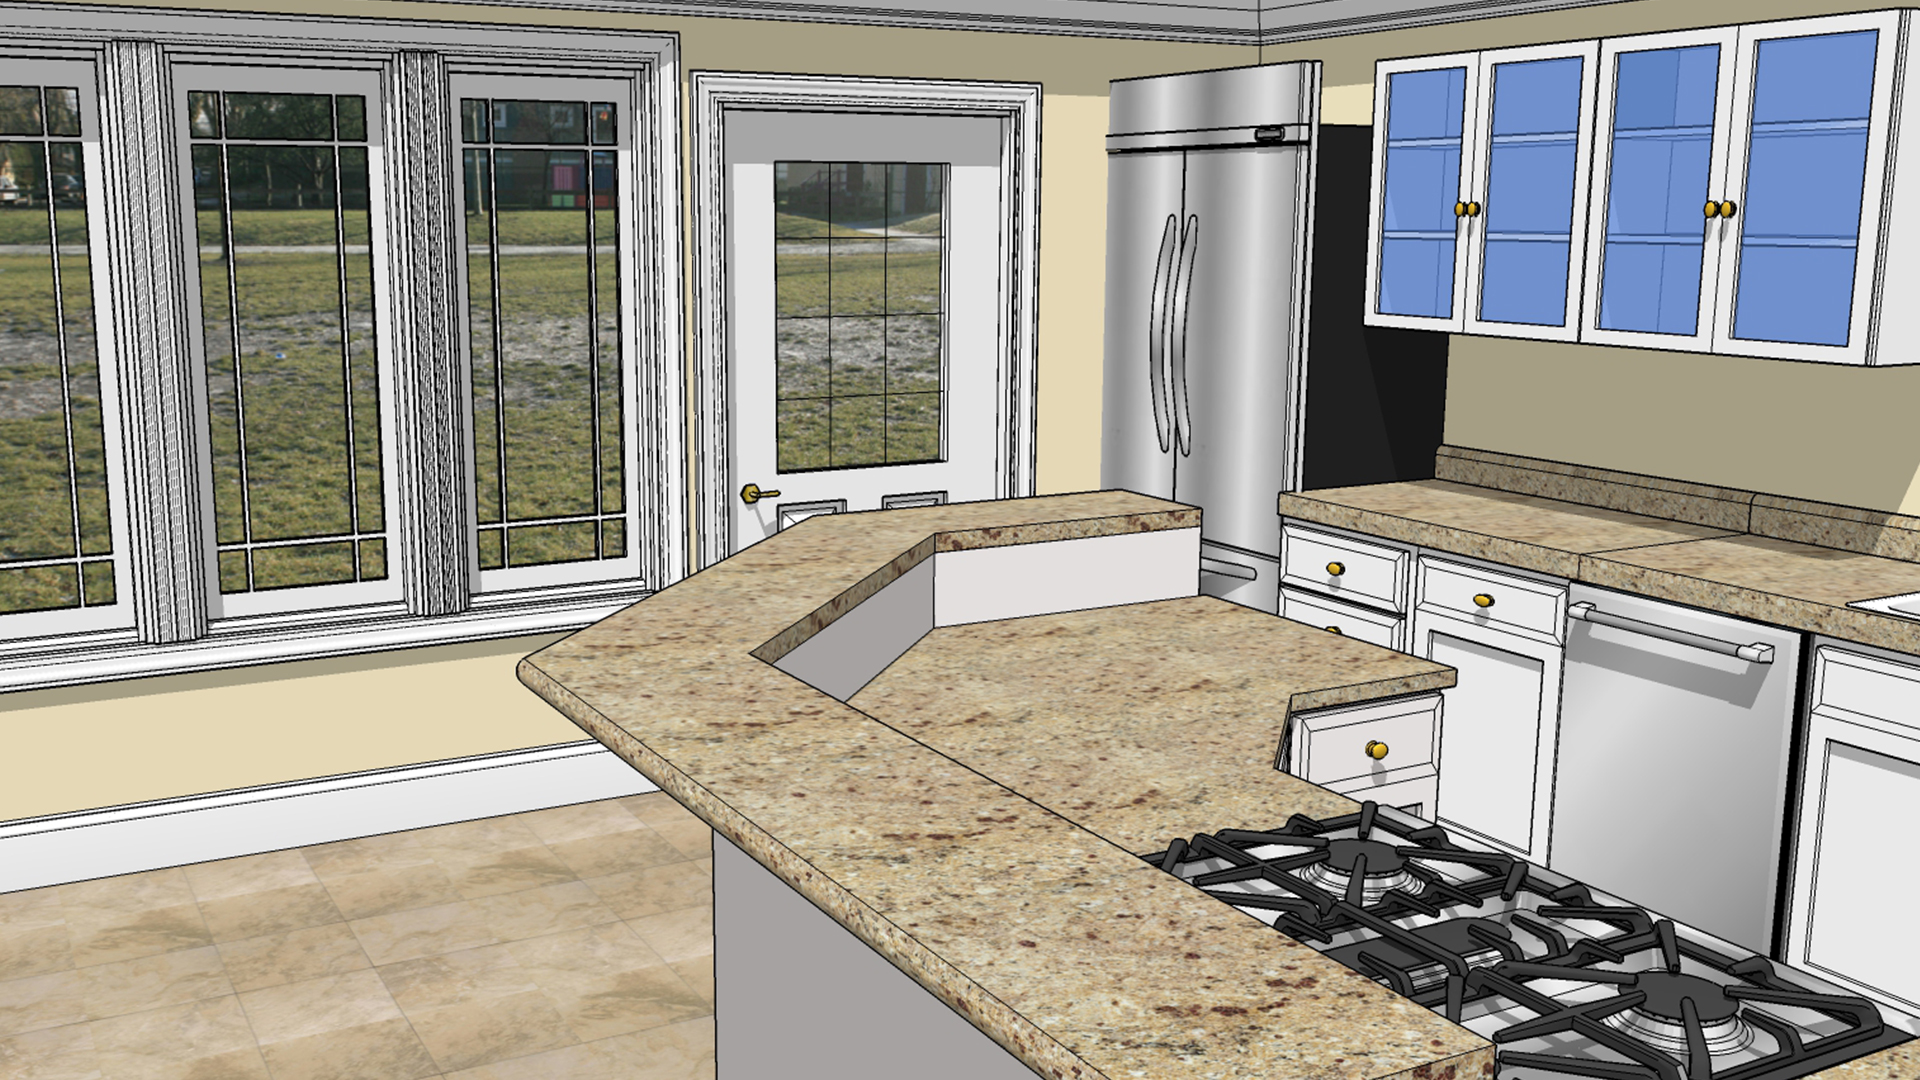 sketchup for interior design - Sketchup Kitchen Design